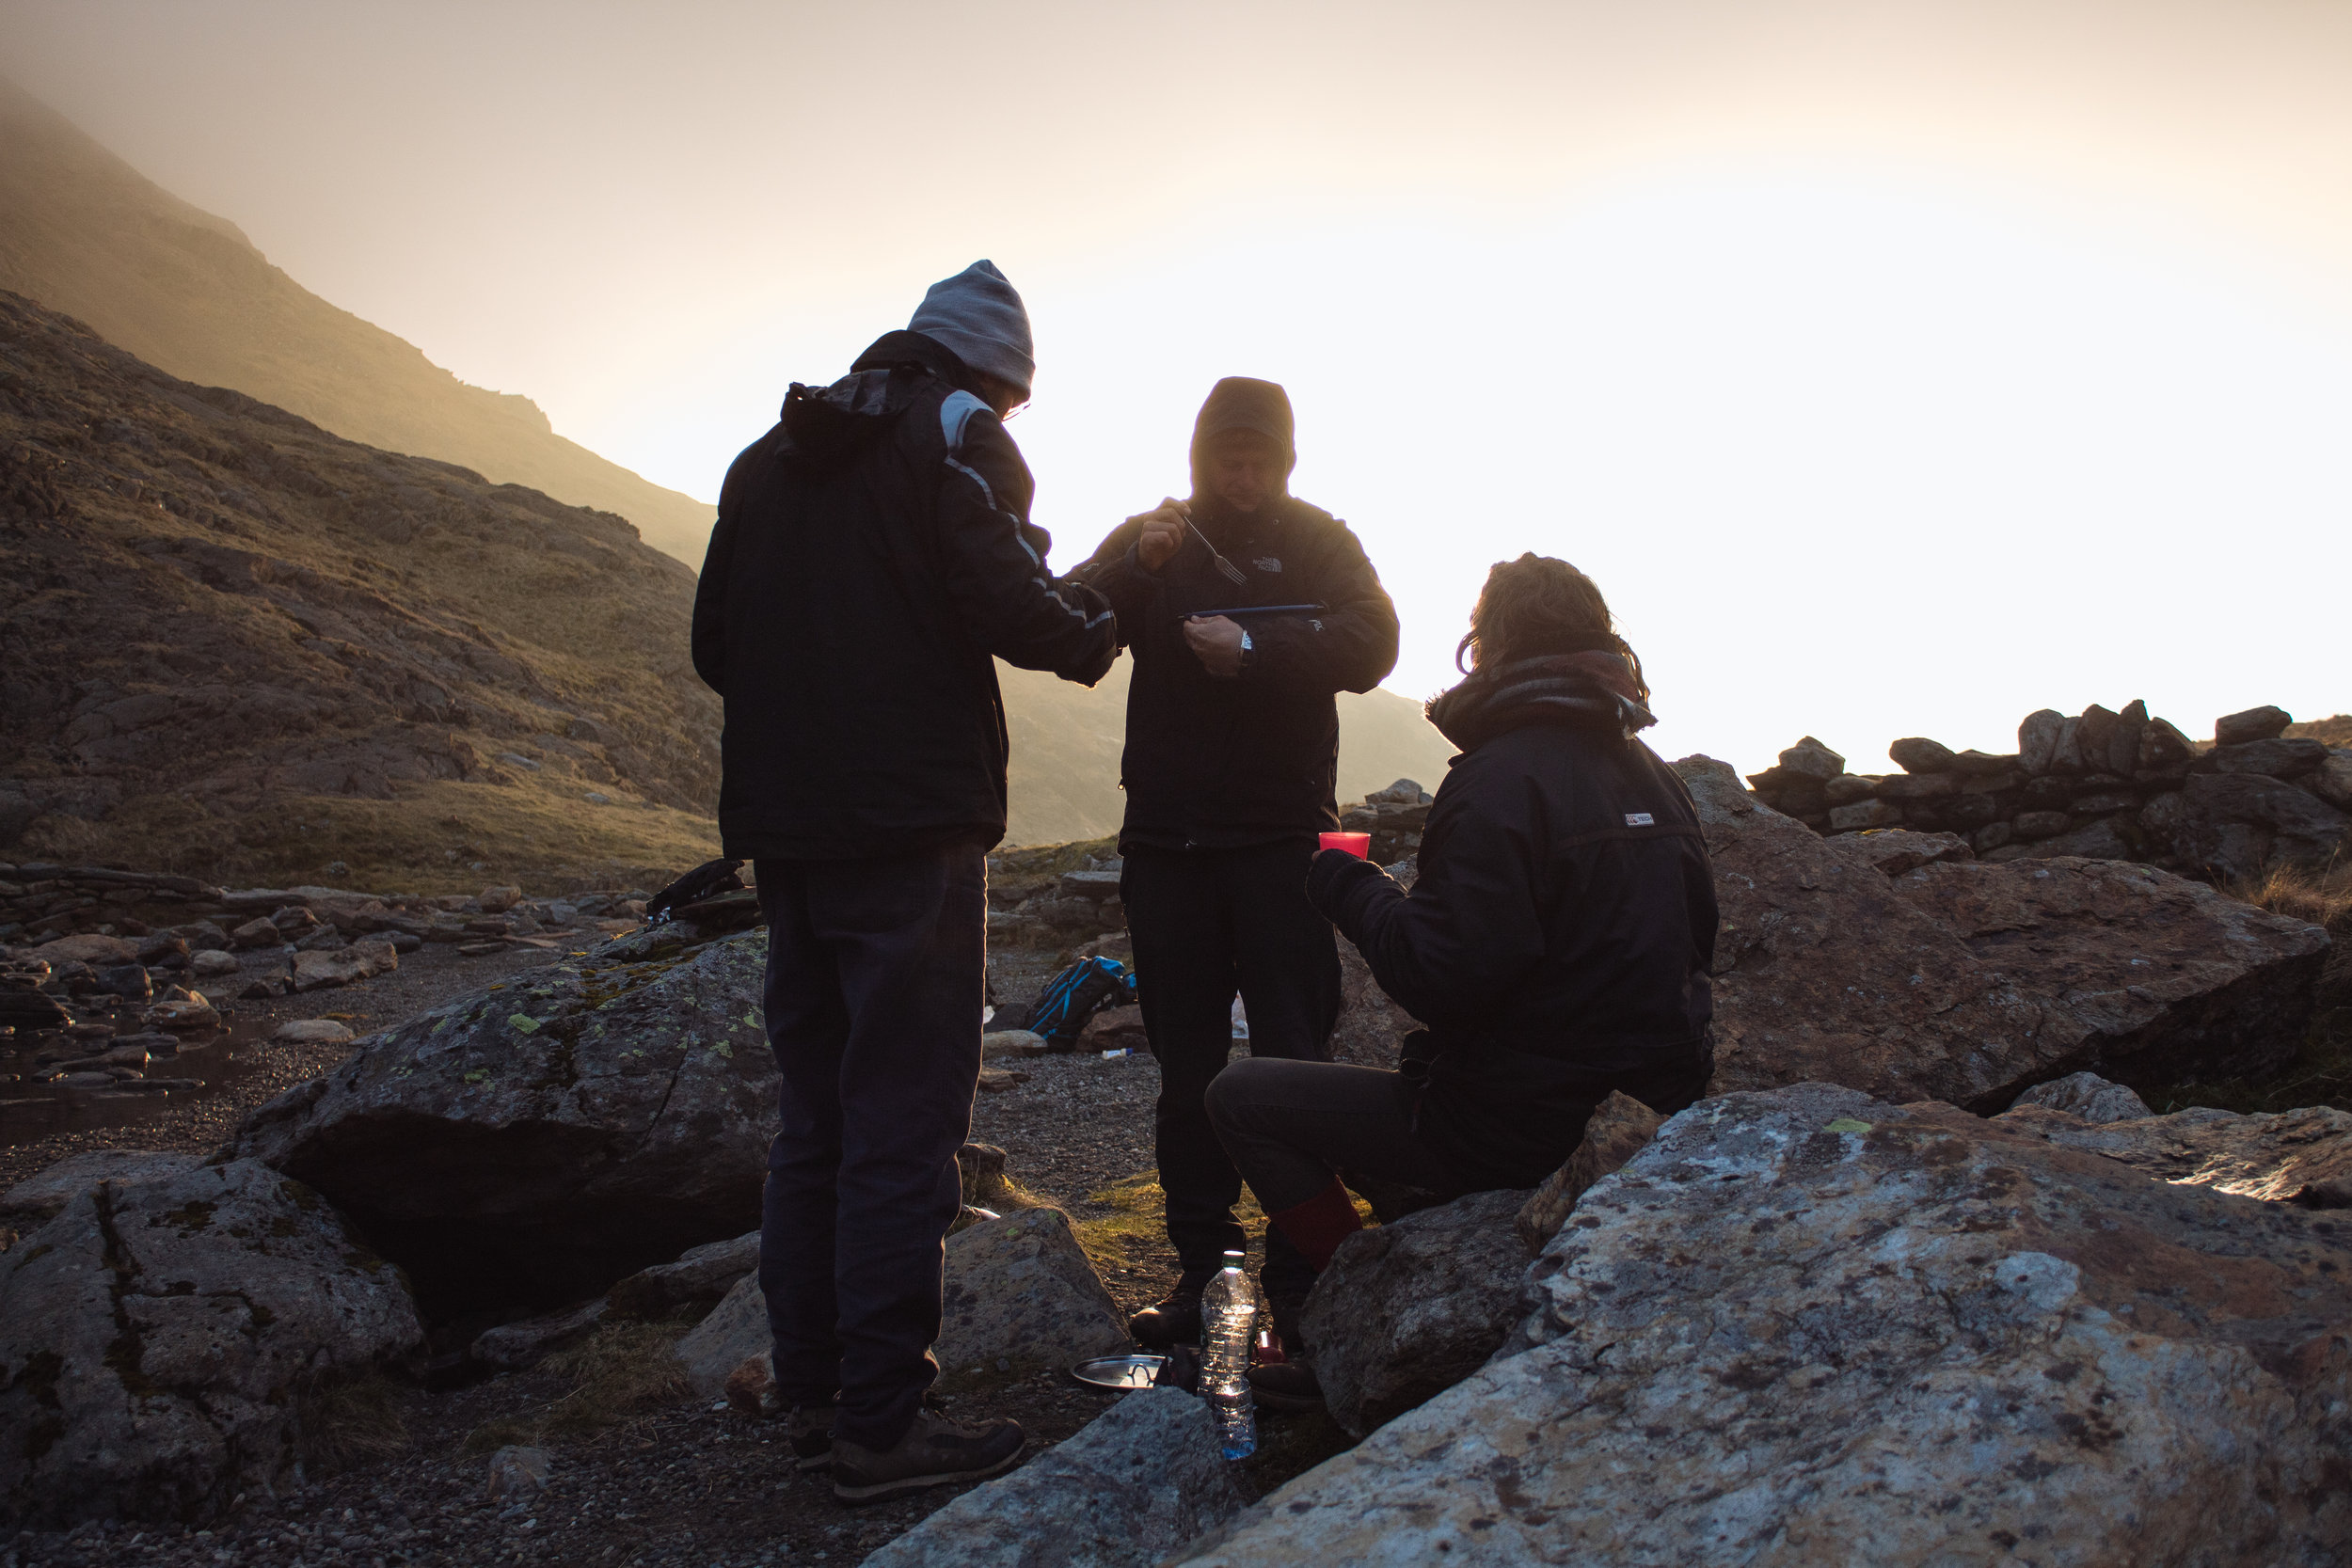 Arguing over how porridge is made best, just after sunrise, as we prepare to summit Snowdon.